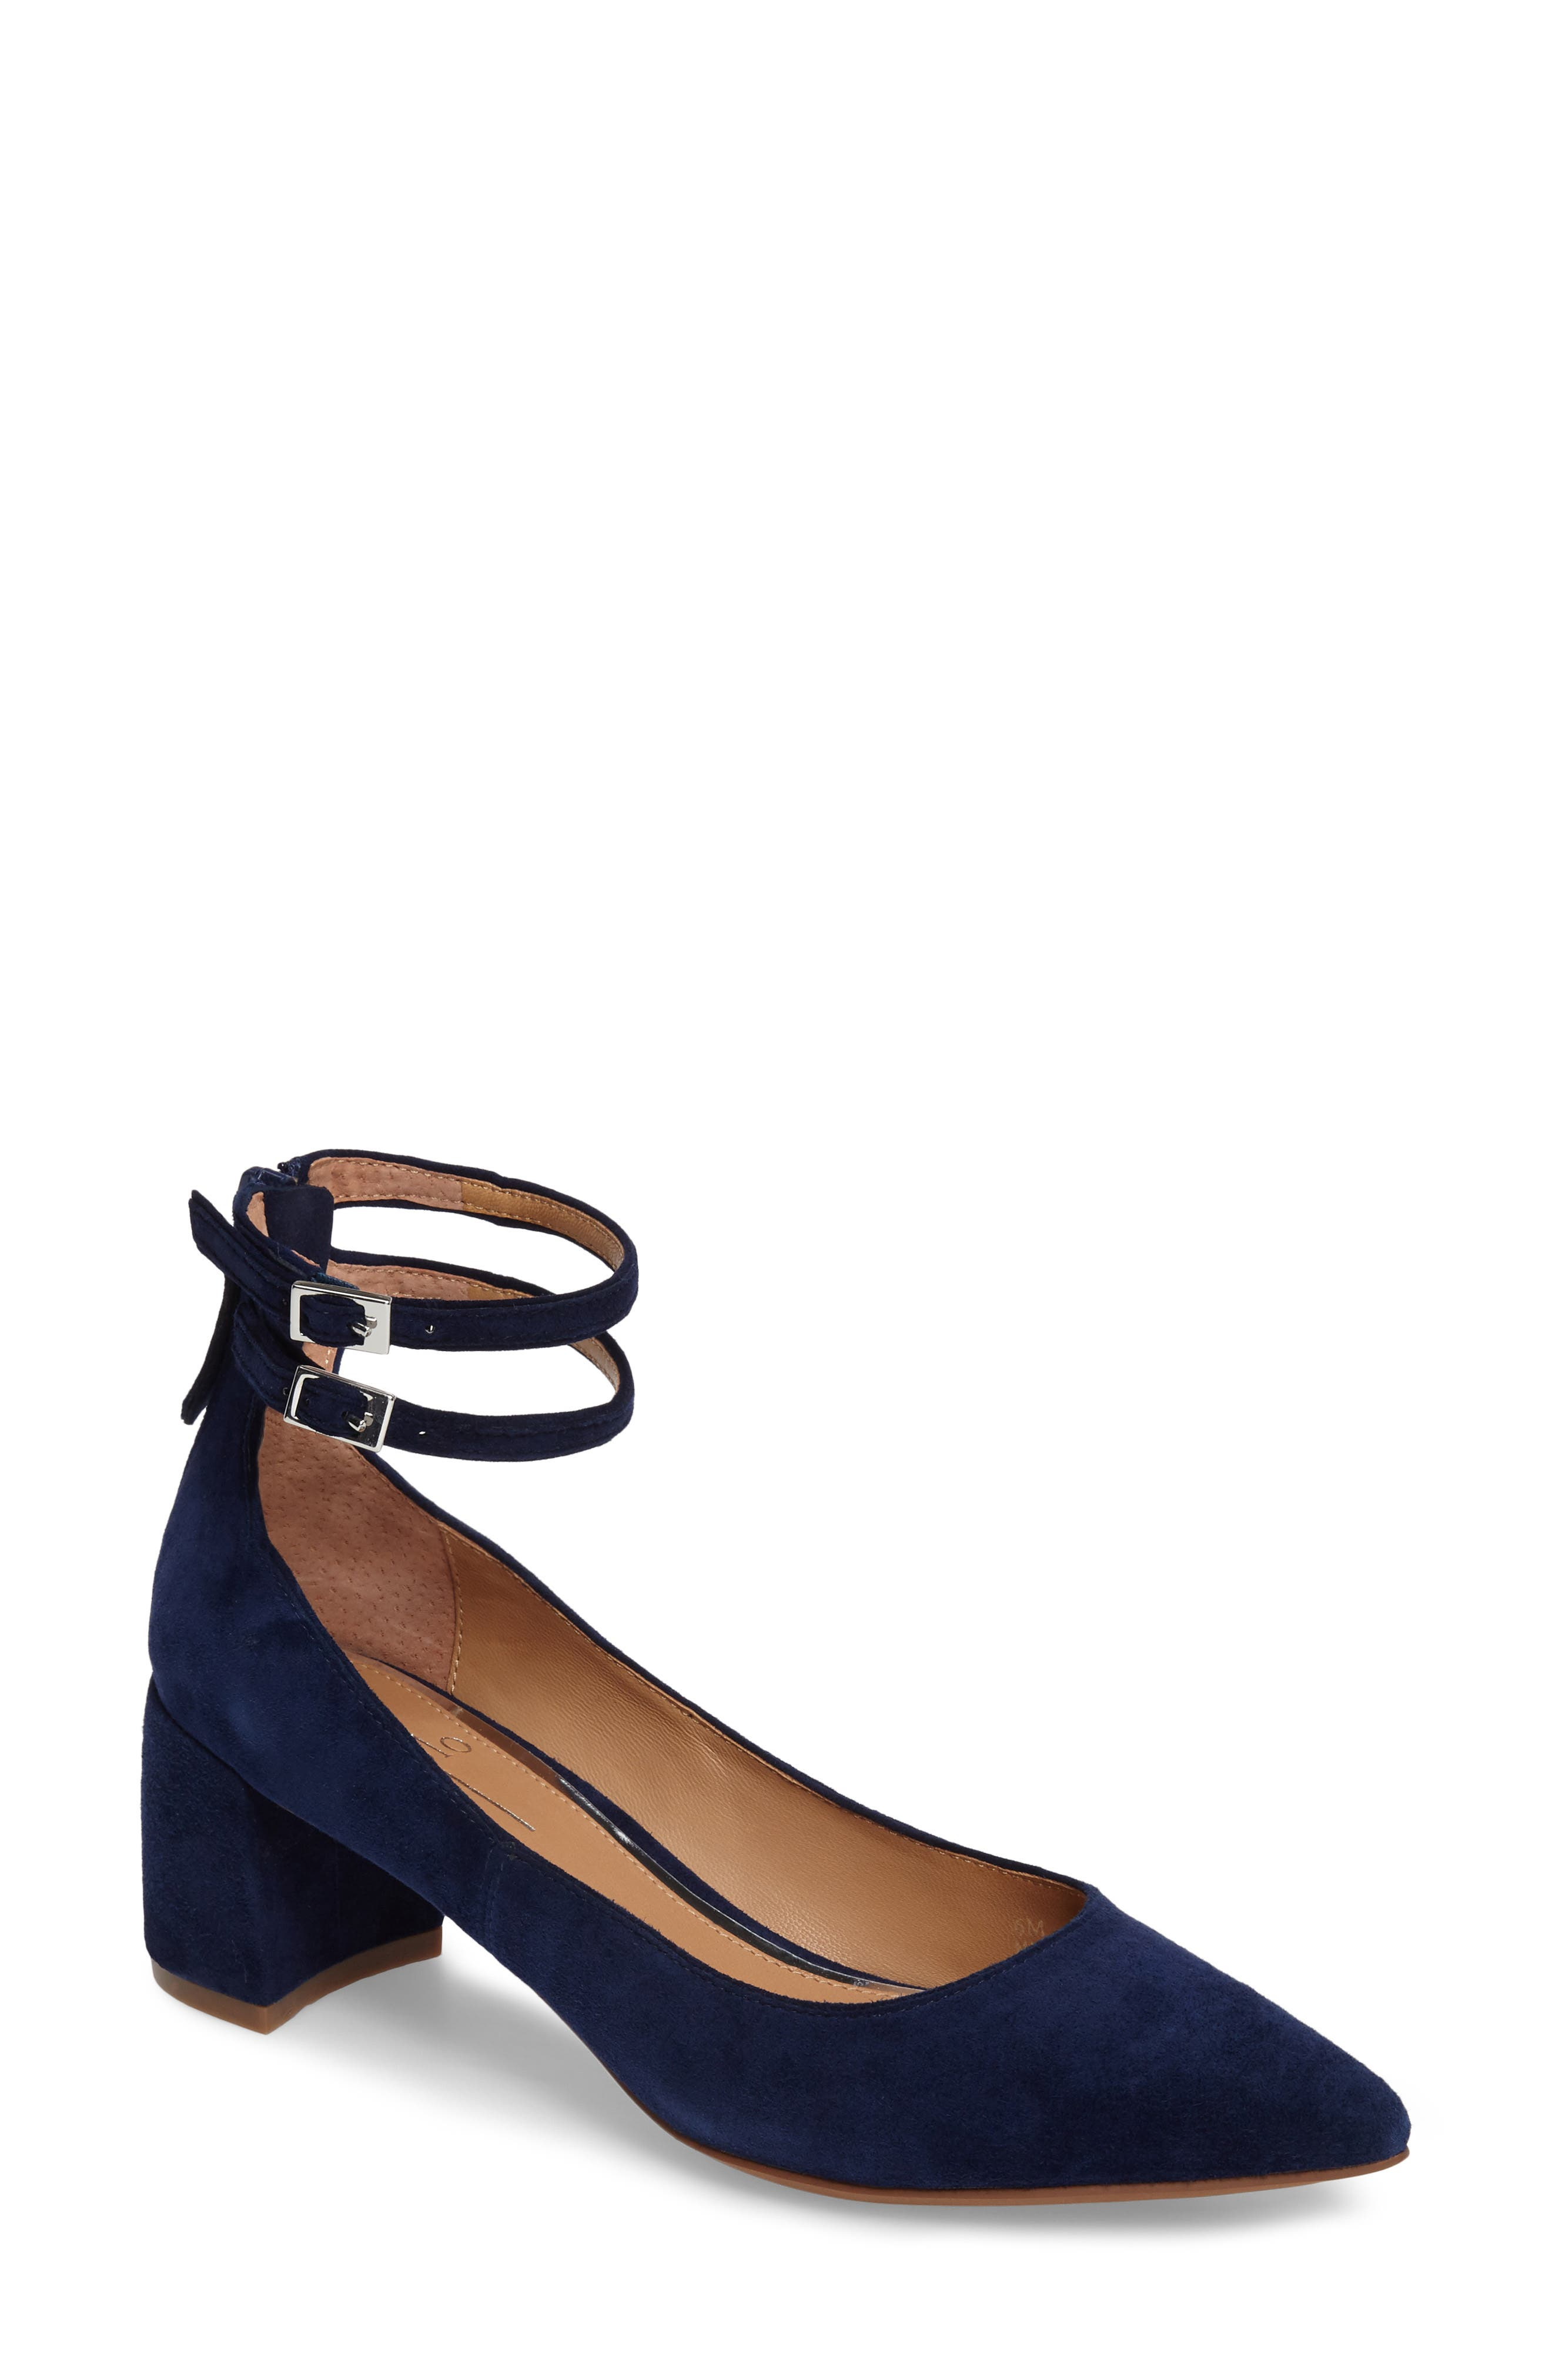 'Noel' Pointy Toe Ankle Strap Pump,                             Main thumbnail 1, color,                             412